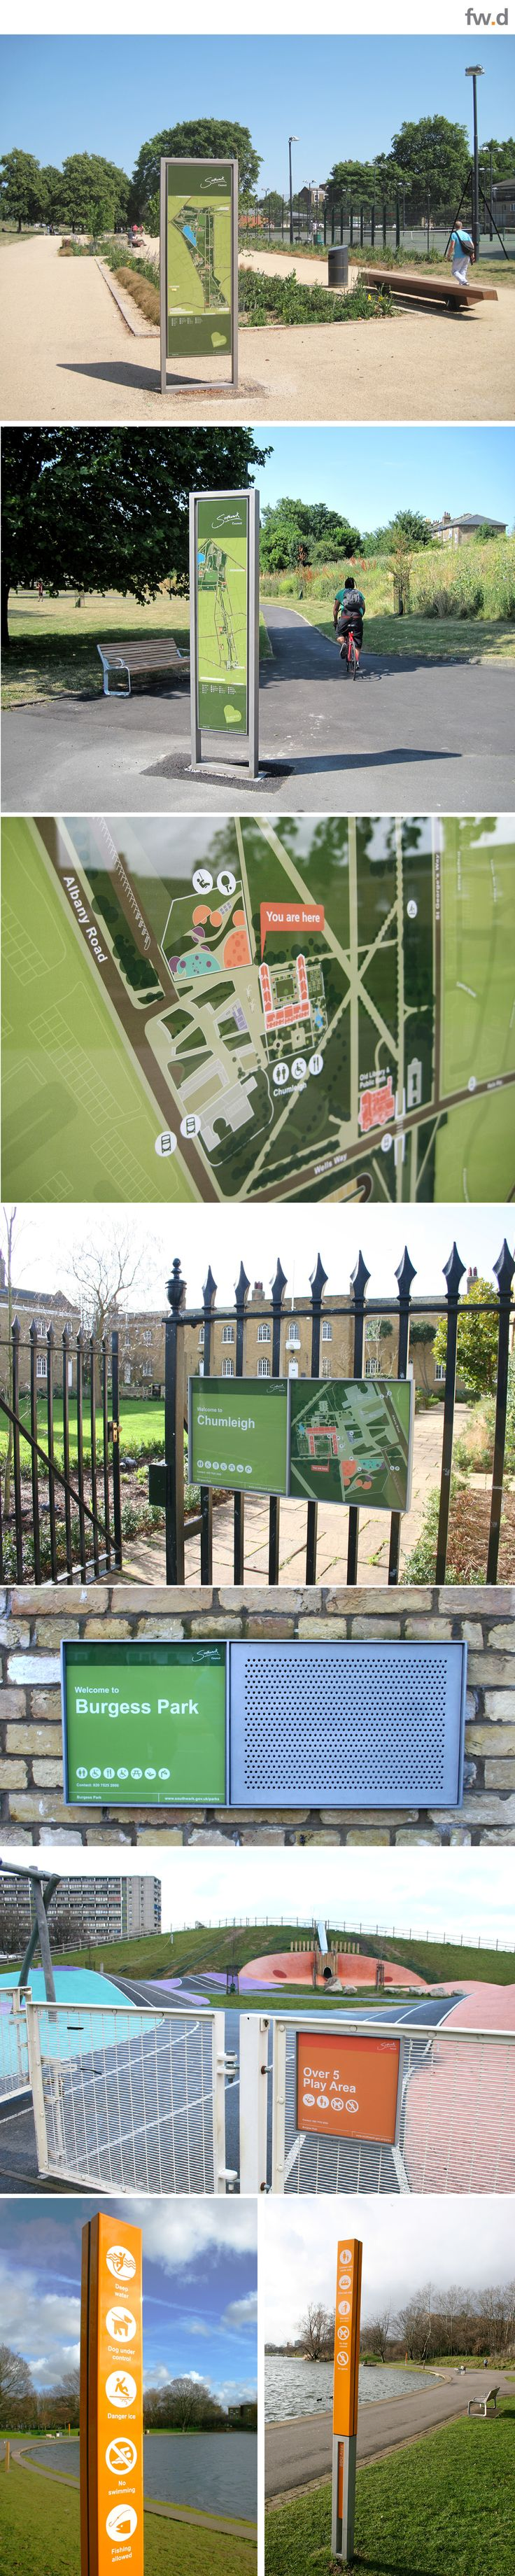 Destination branding & wayfinding provision for Burgess Park by fwdesign. #wayfinding #map #infographics #signage www.fwdesign.com